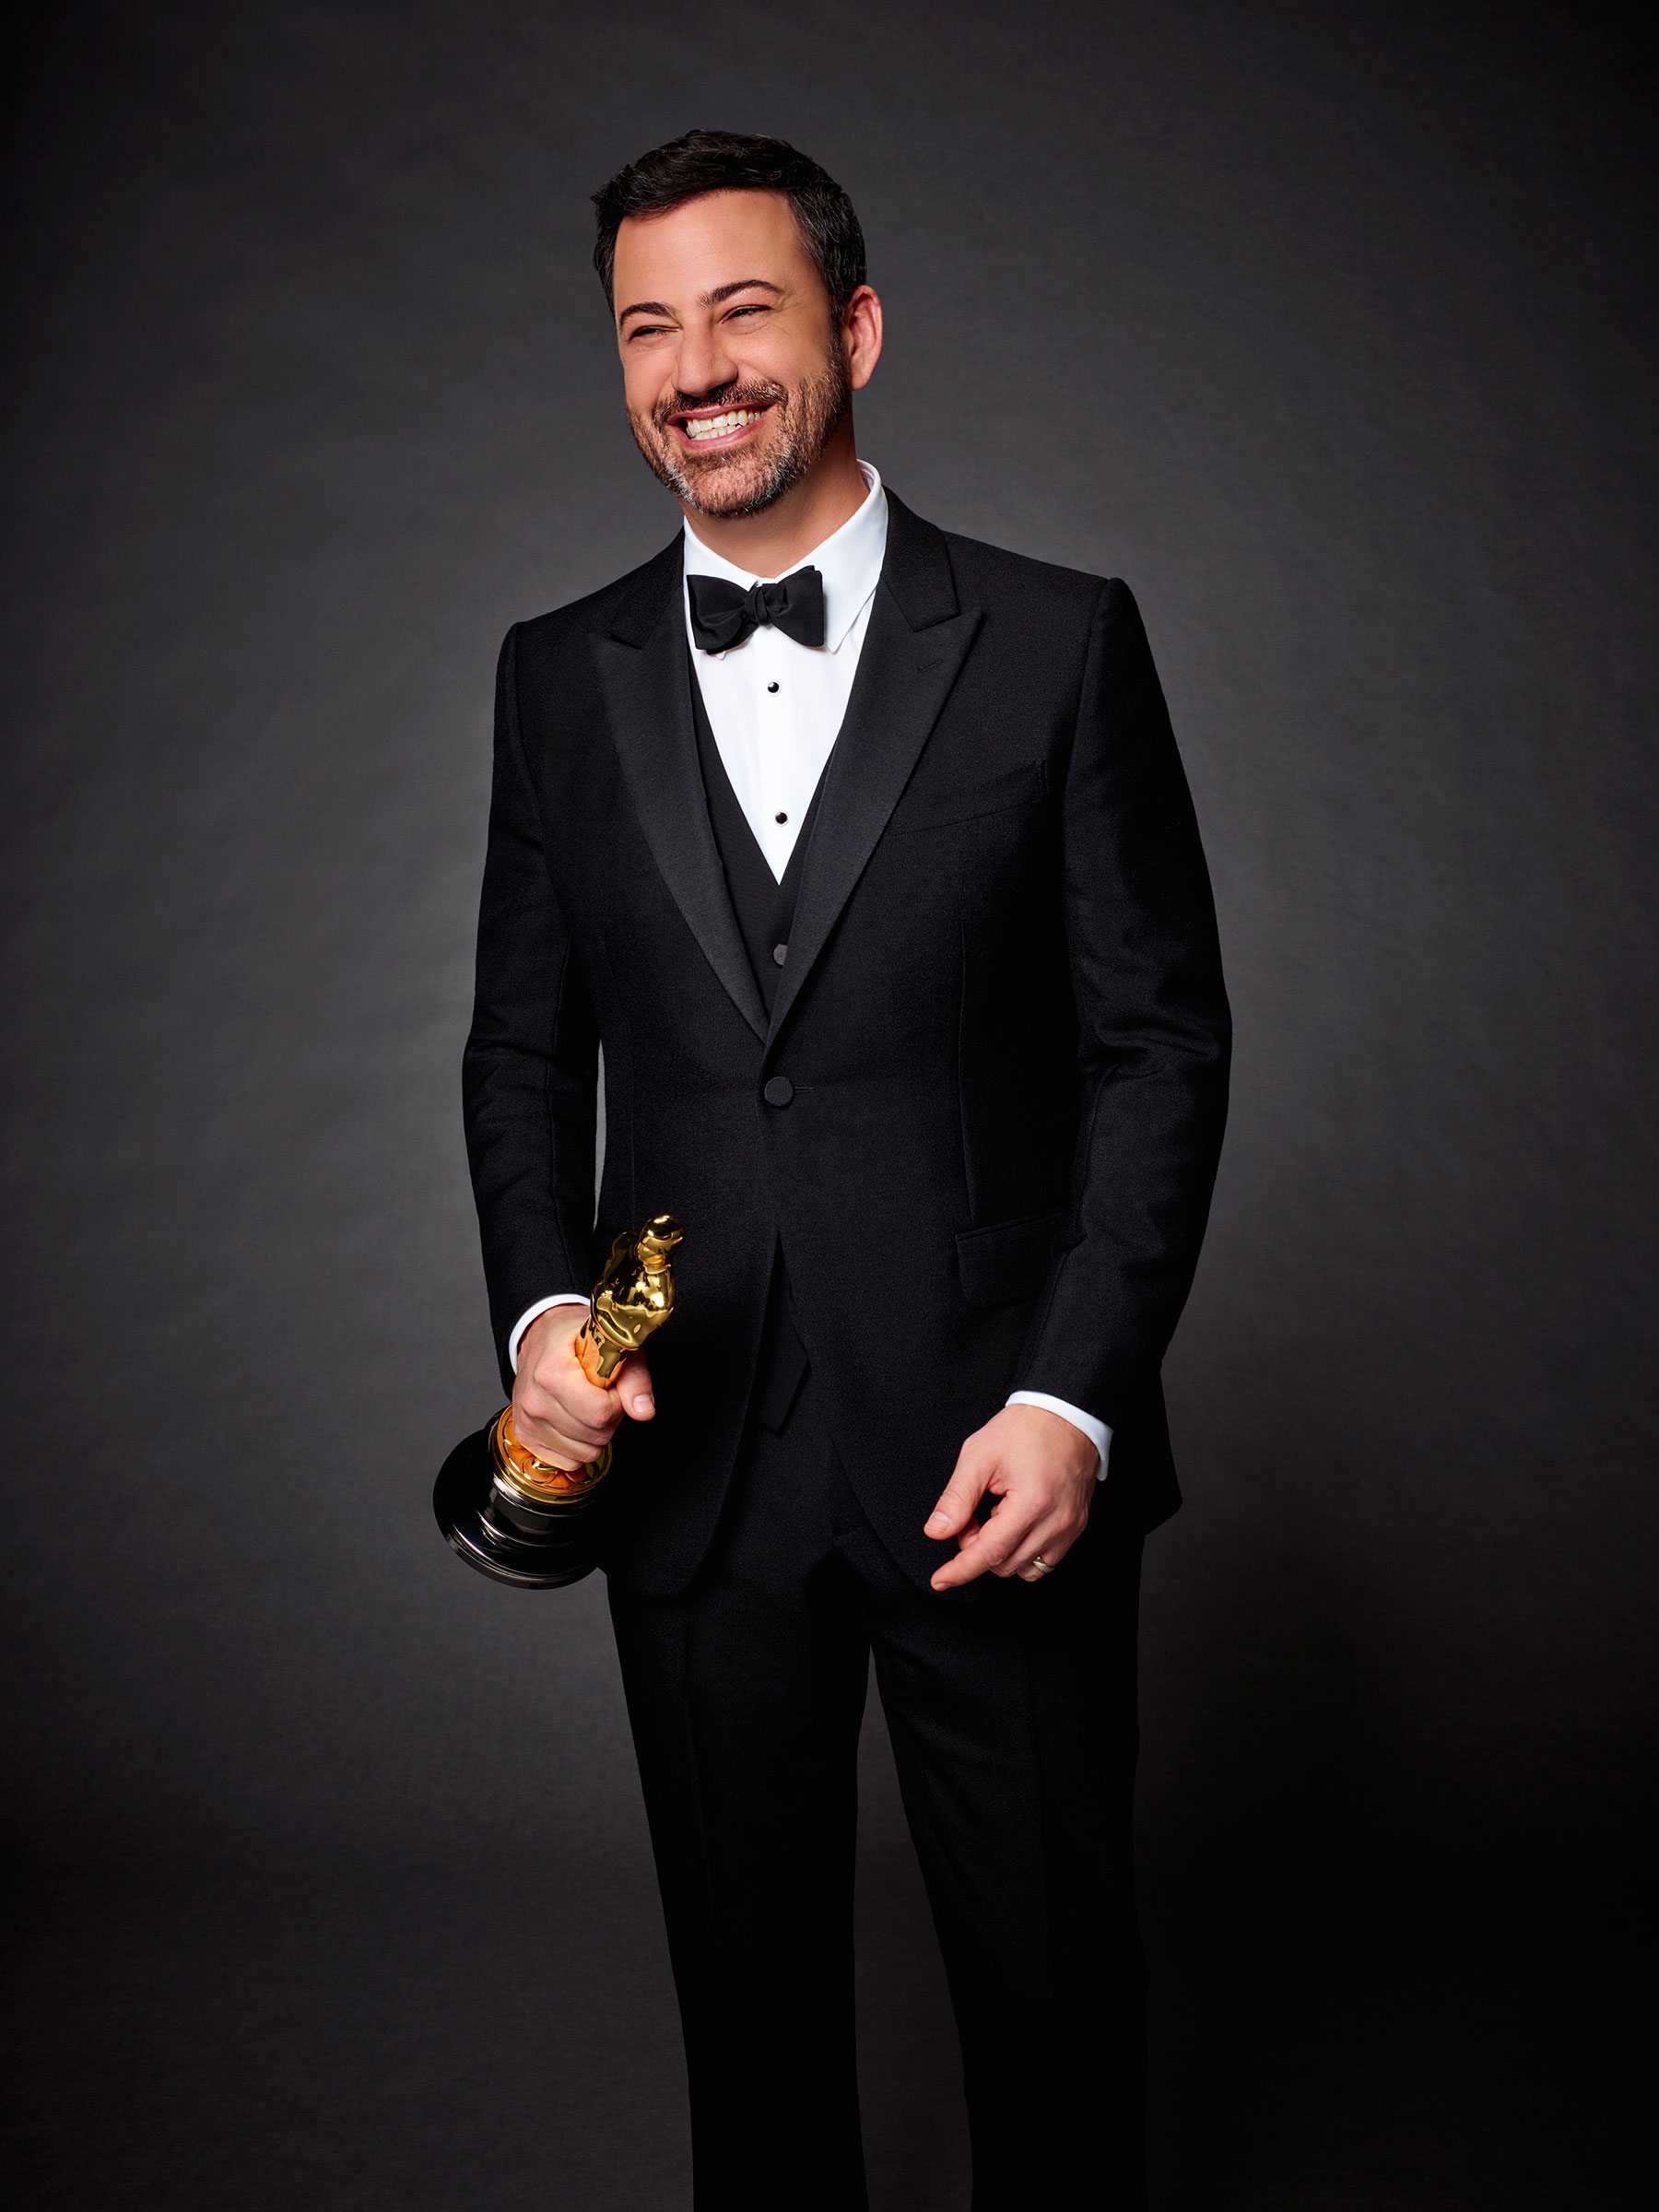 Late-night talk show host, producer and comedian Jimmy Kimmel will host the 89th Oscars® to be broadcast live on Oscar® SUNDAY, FEBRUARY 26, 2017, on the ABC Television Network. (Photo: ABC/Jeff Lipsky)